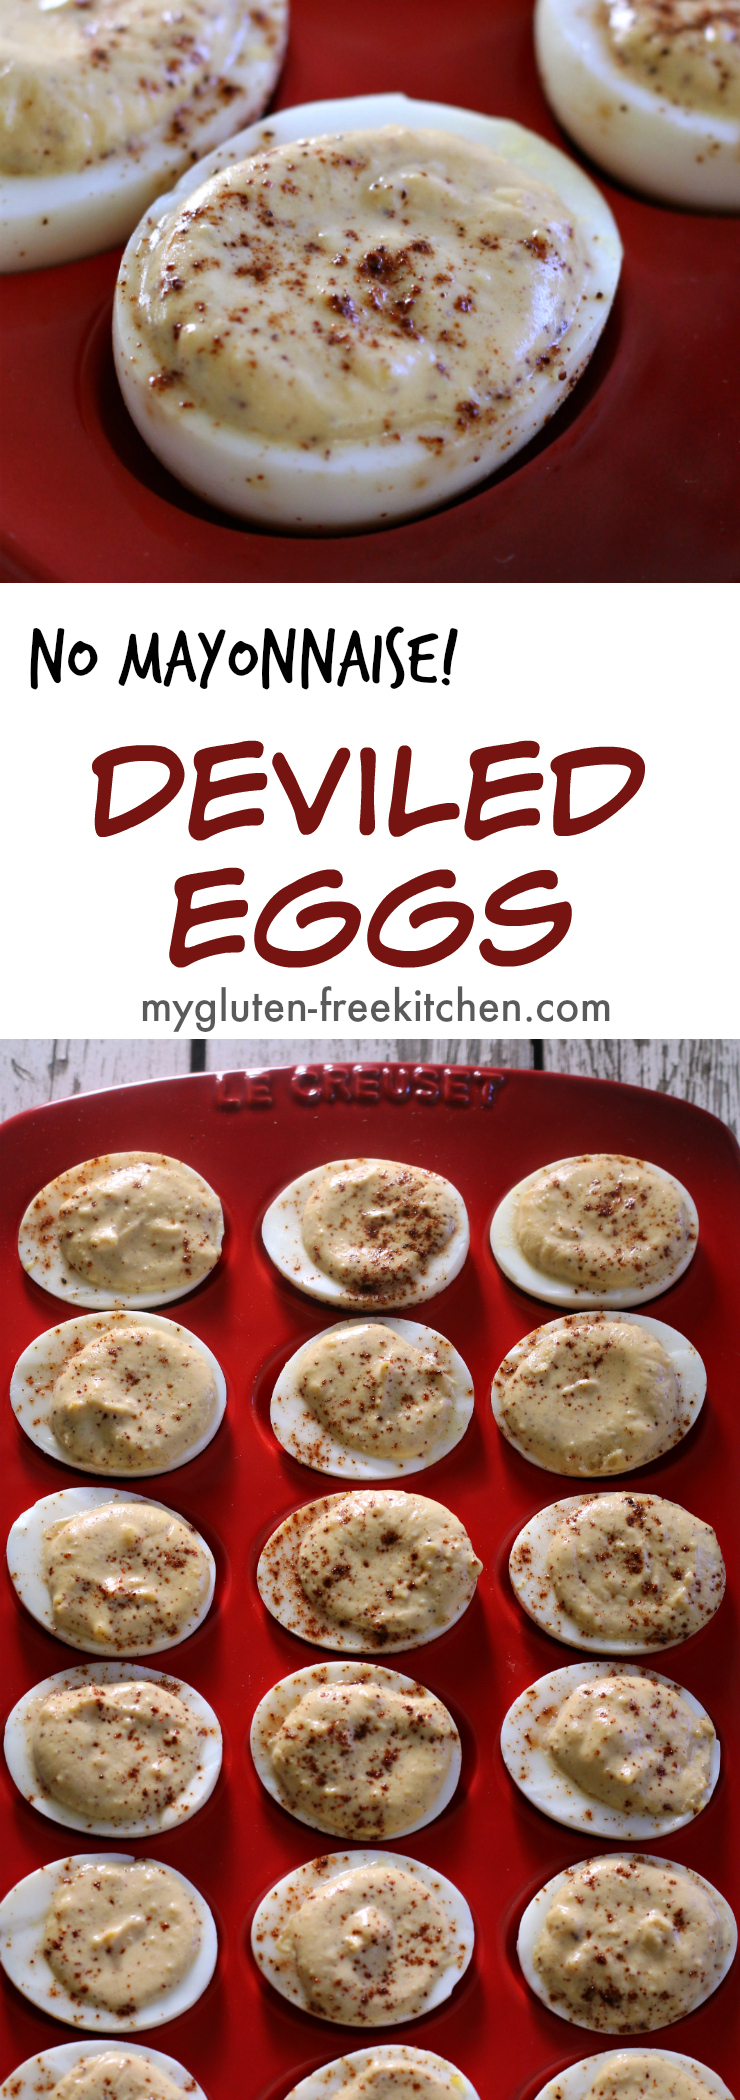 No Mayonnaise Deviled Eggs Recipe. Naturally gluten-free, creamy, tangy and a little spicy.